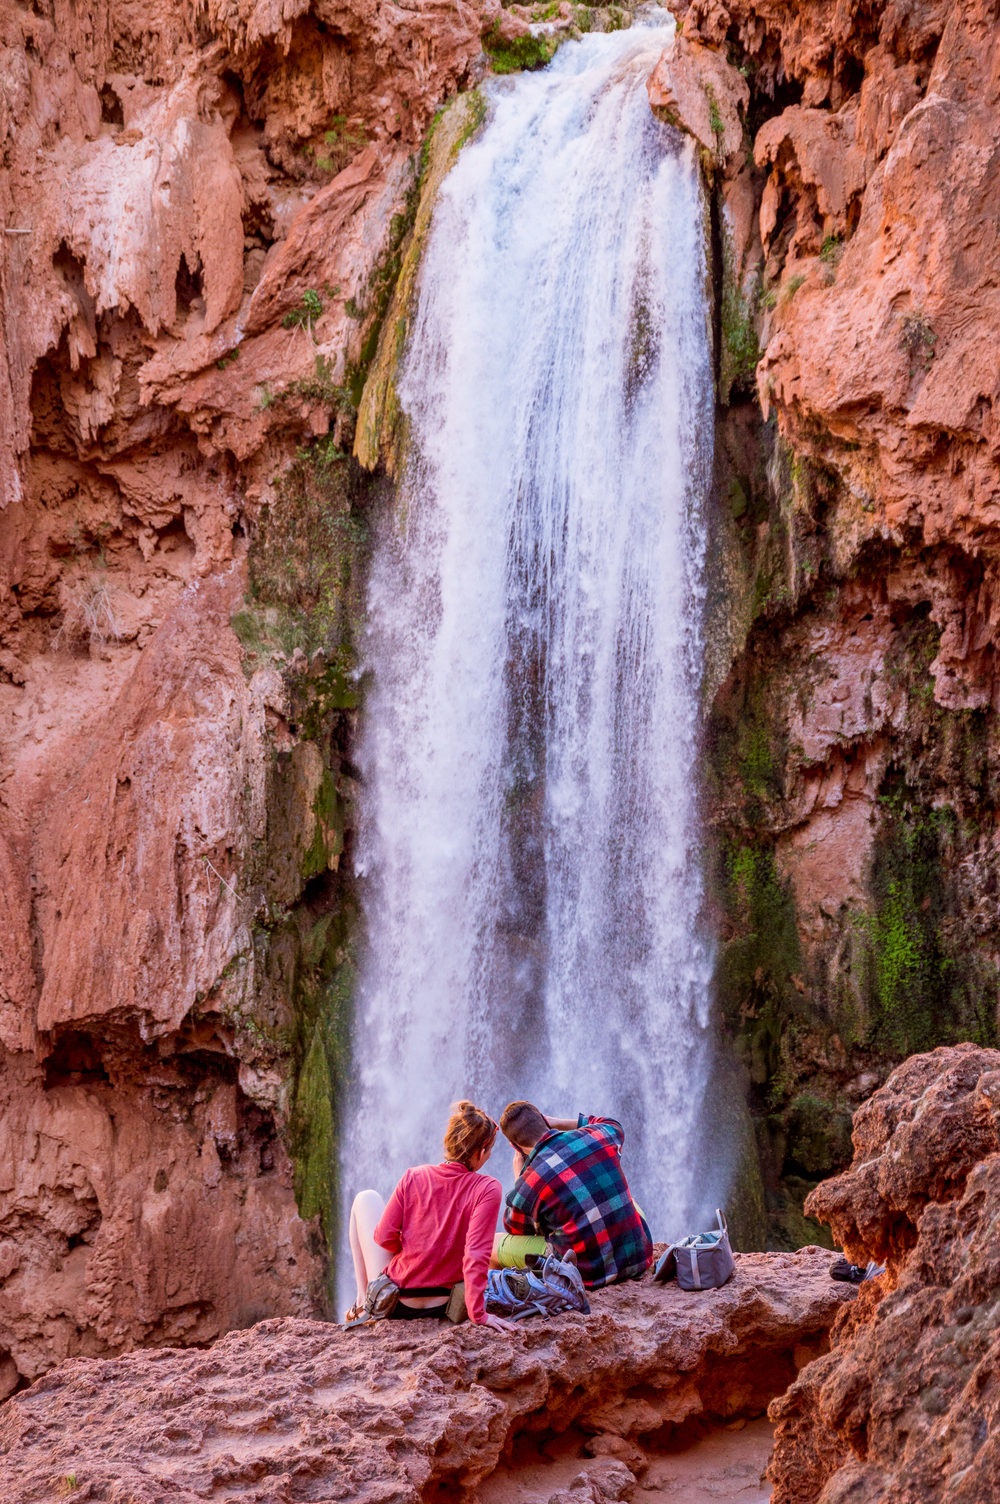 photography session at mooney falls - photo by jesse weber